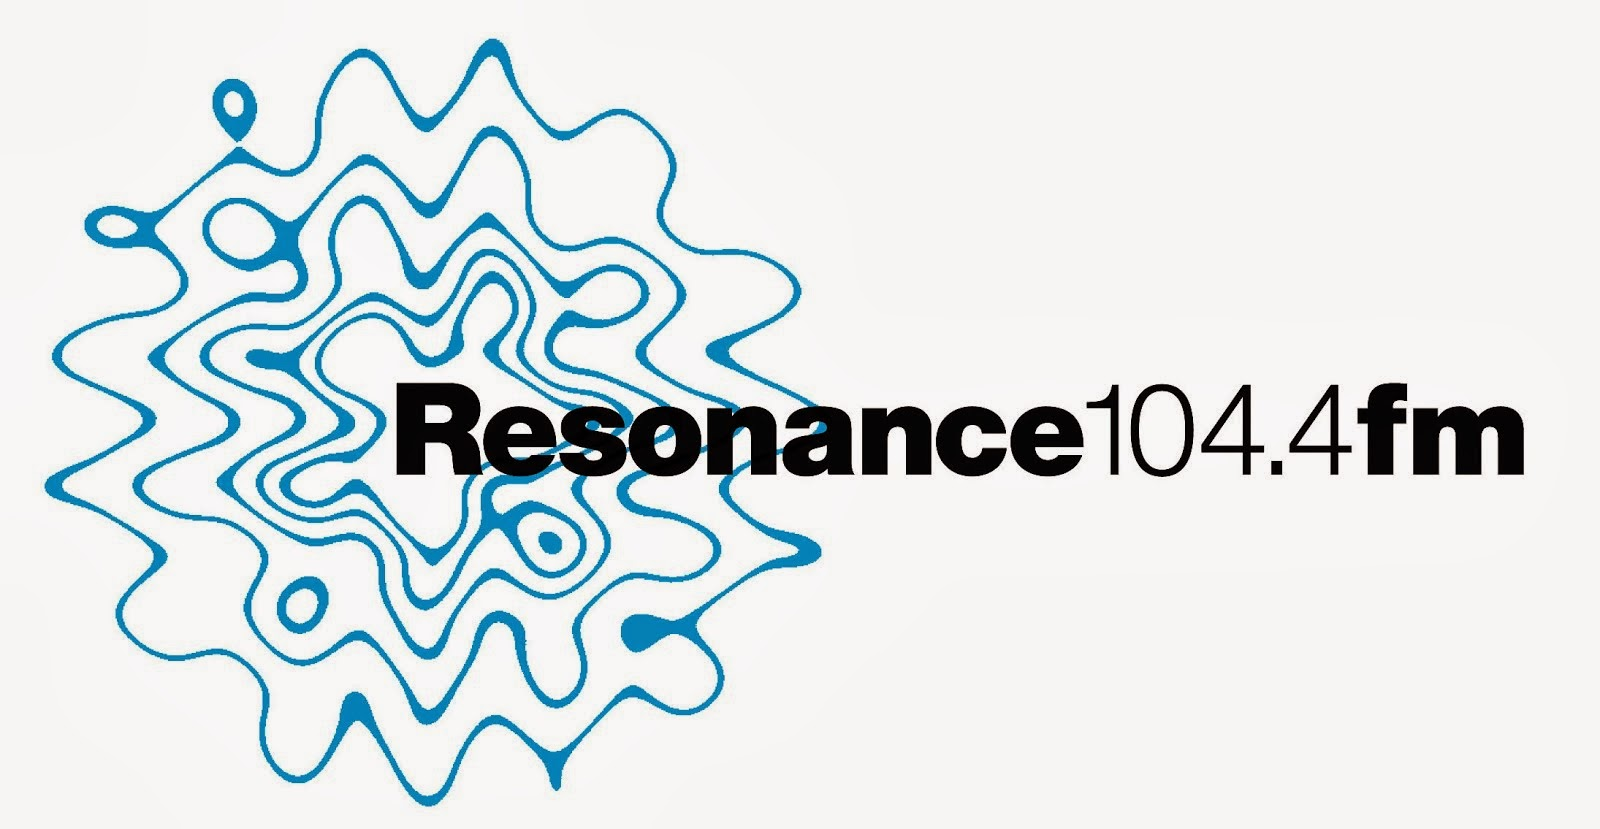 Resonance104.4fm